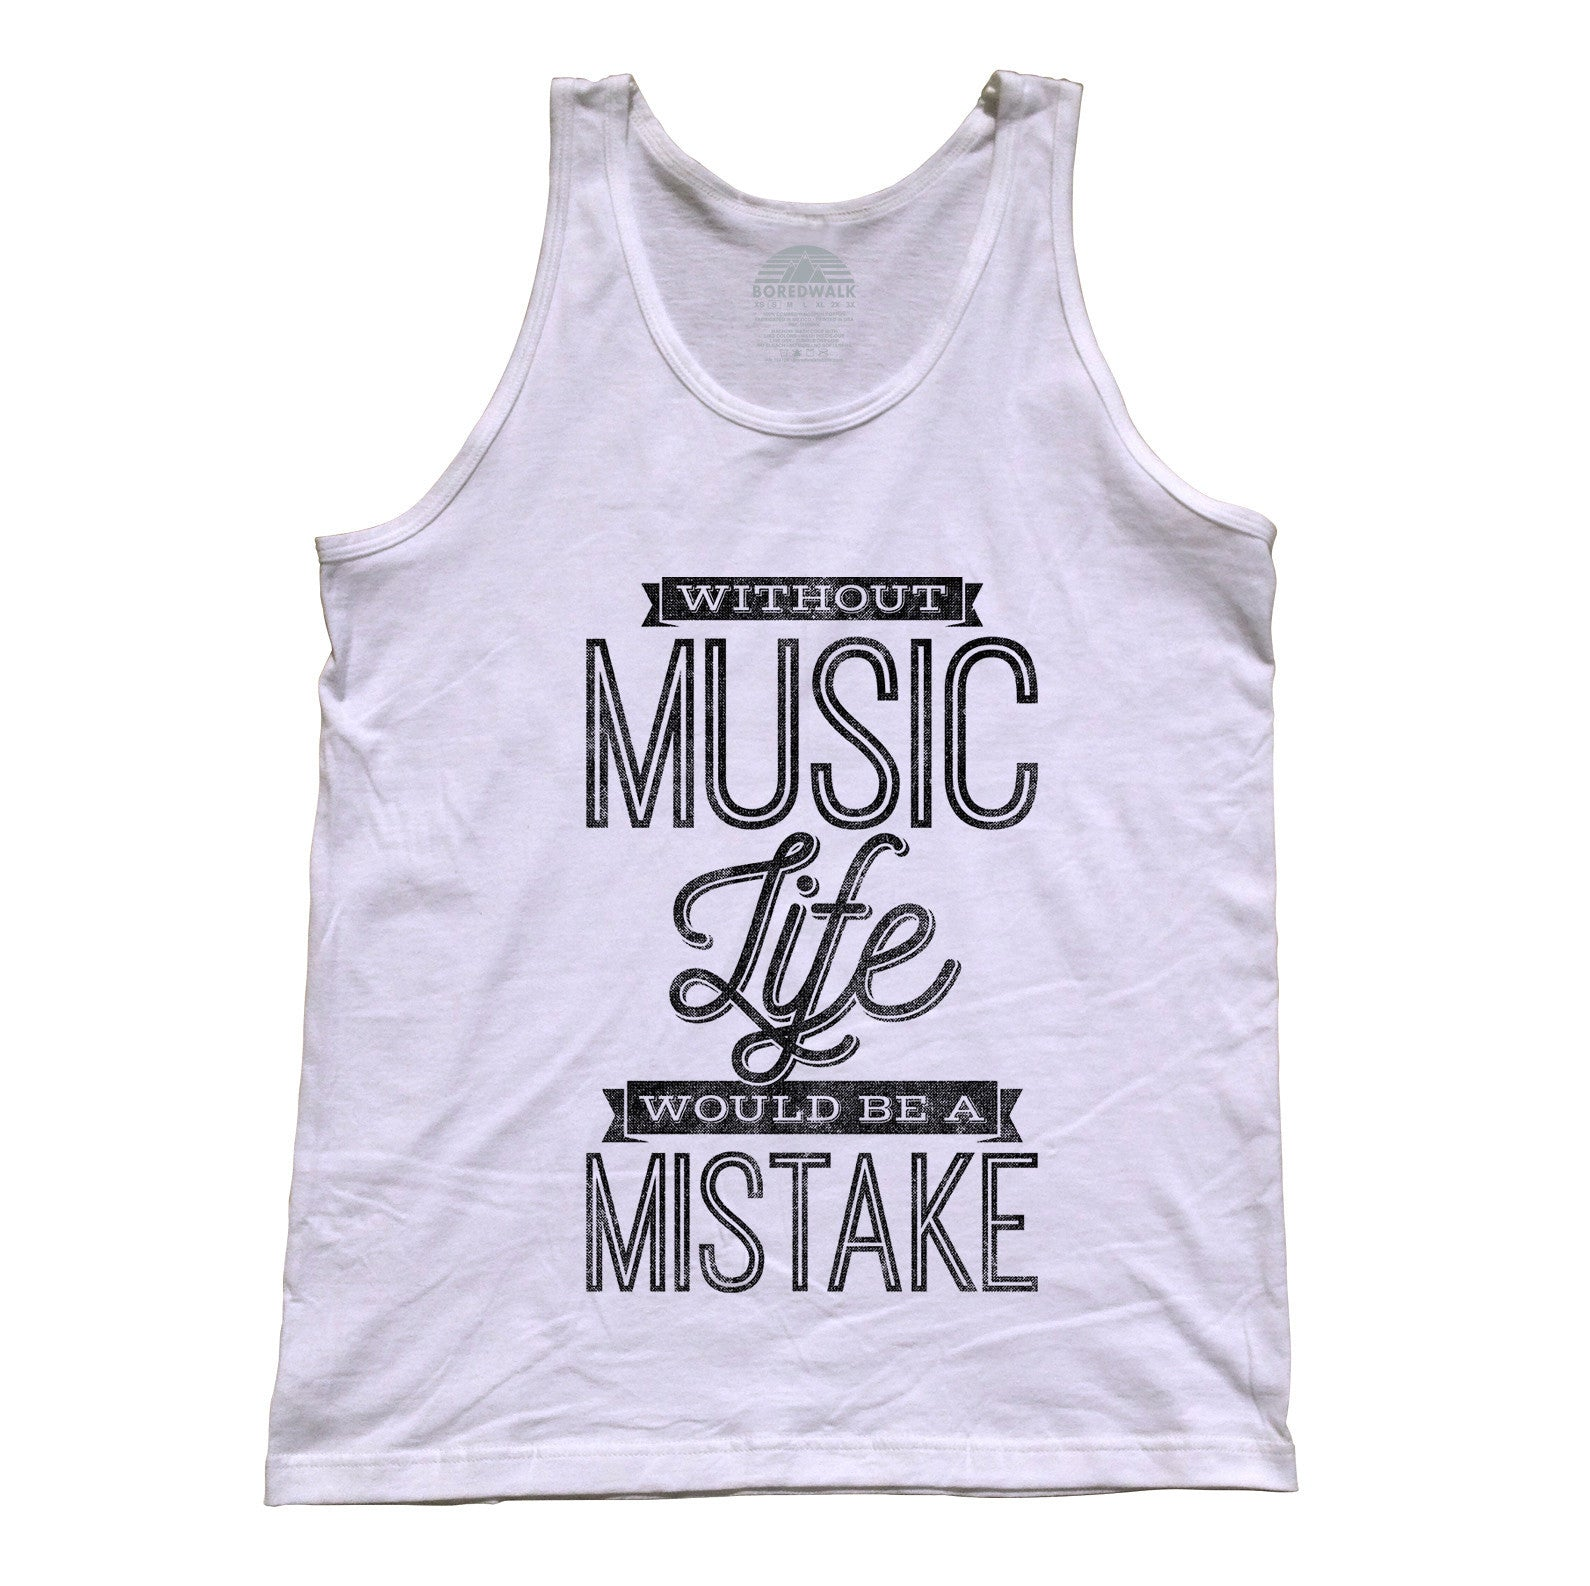 Unisex Without Music Life Would be a Mistake Tank Top